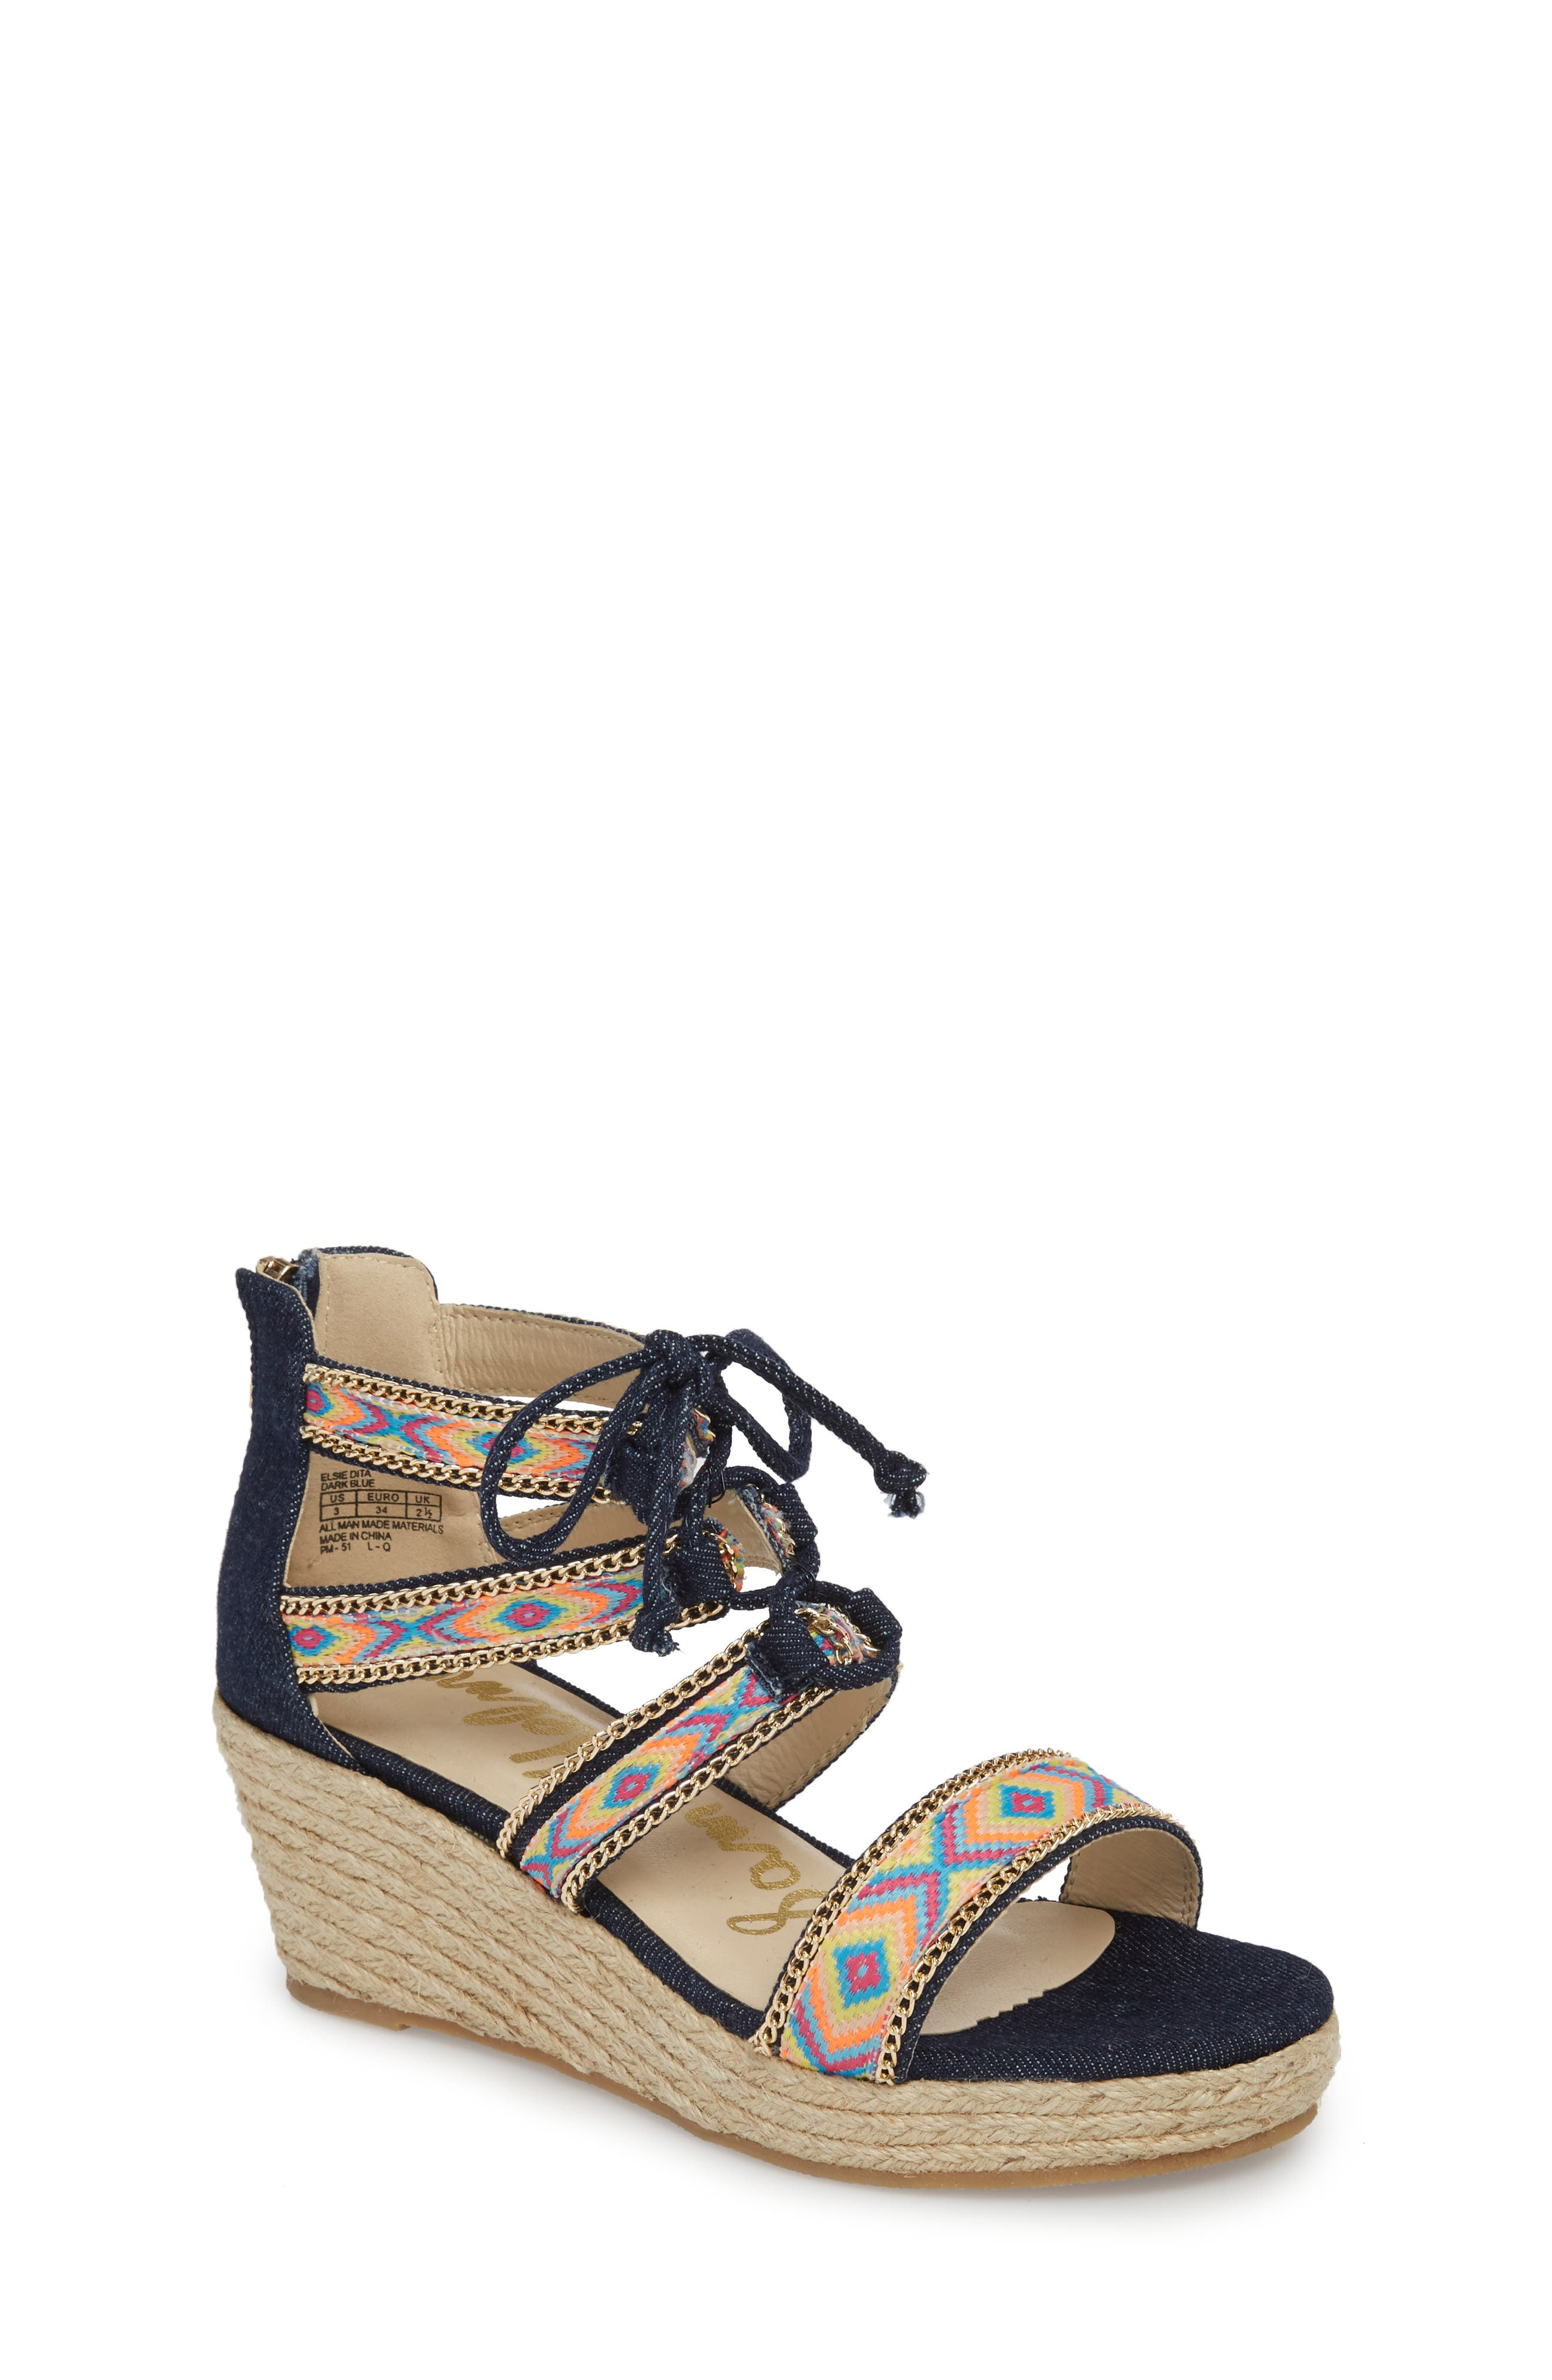 Elsie Dita Wedge Sandal,                             Main thumbnail 1, color,                             Dark Blue Fabric